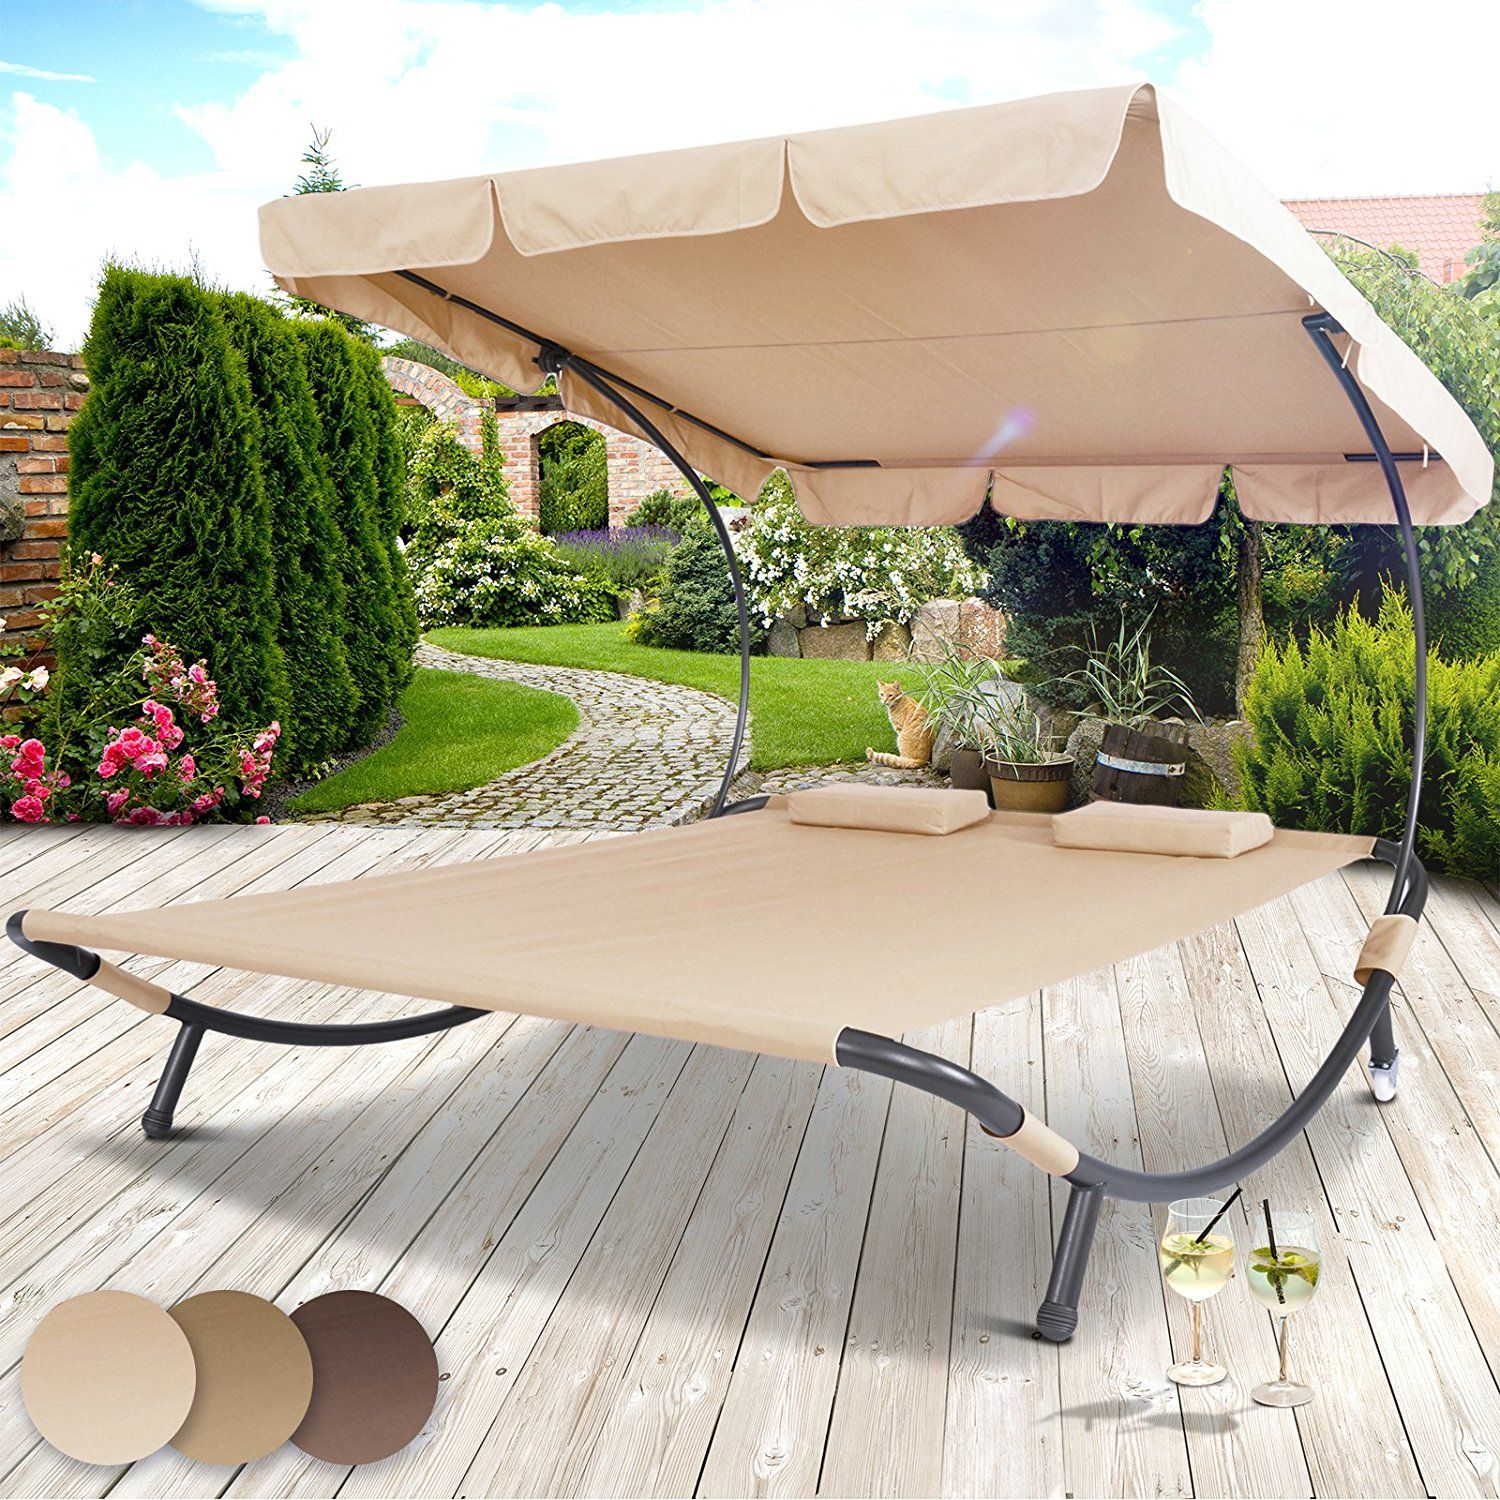 miadomodo sun lounger double day bed hammock chaise outdoor shade canopy garden furniture in different colours